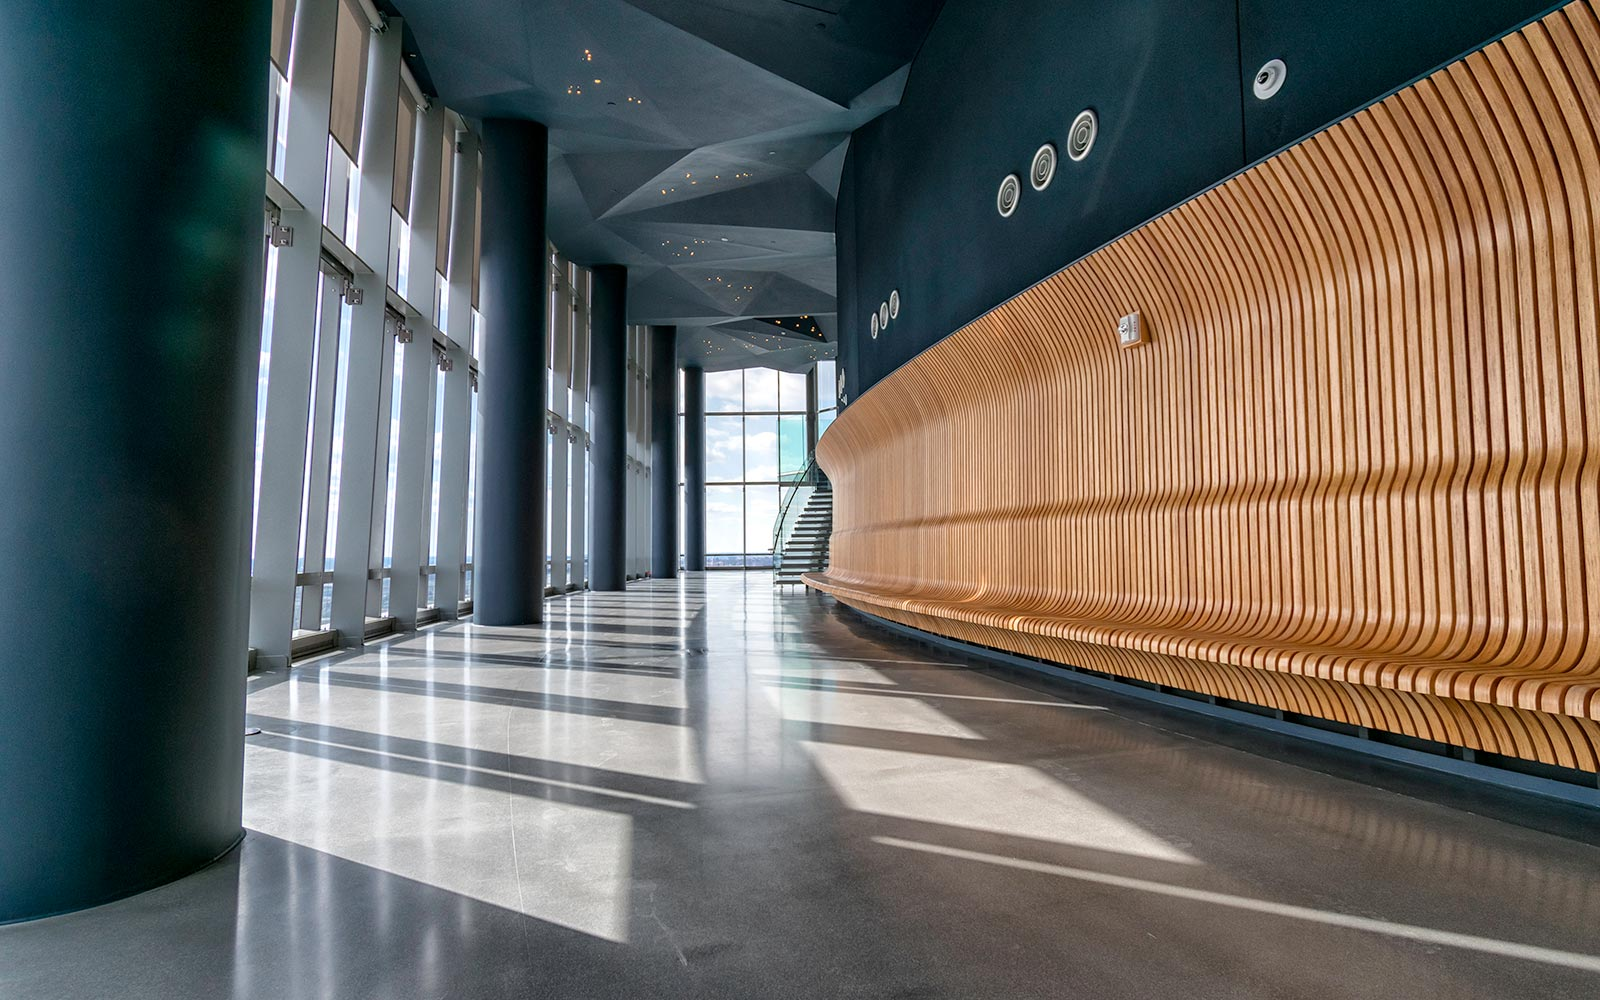 Interior of Observation Deck at CEB Tower in Arlington, VA